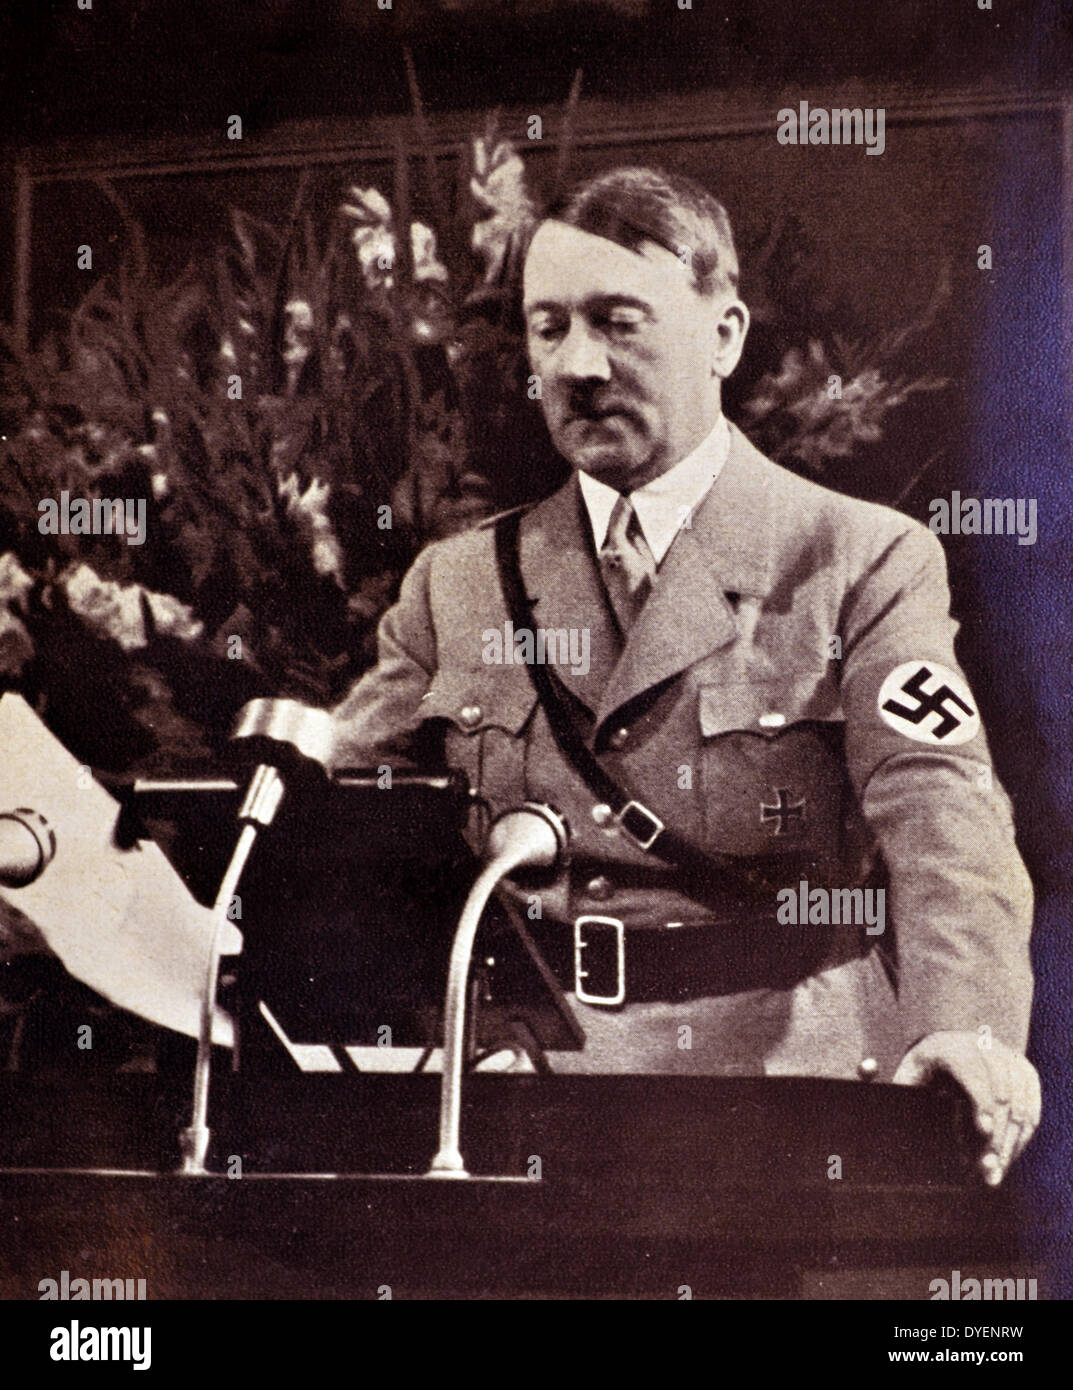 Adolf Hitler 1889-1945. German politician and the leader of the Nazi Party. - Stock Image